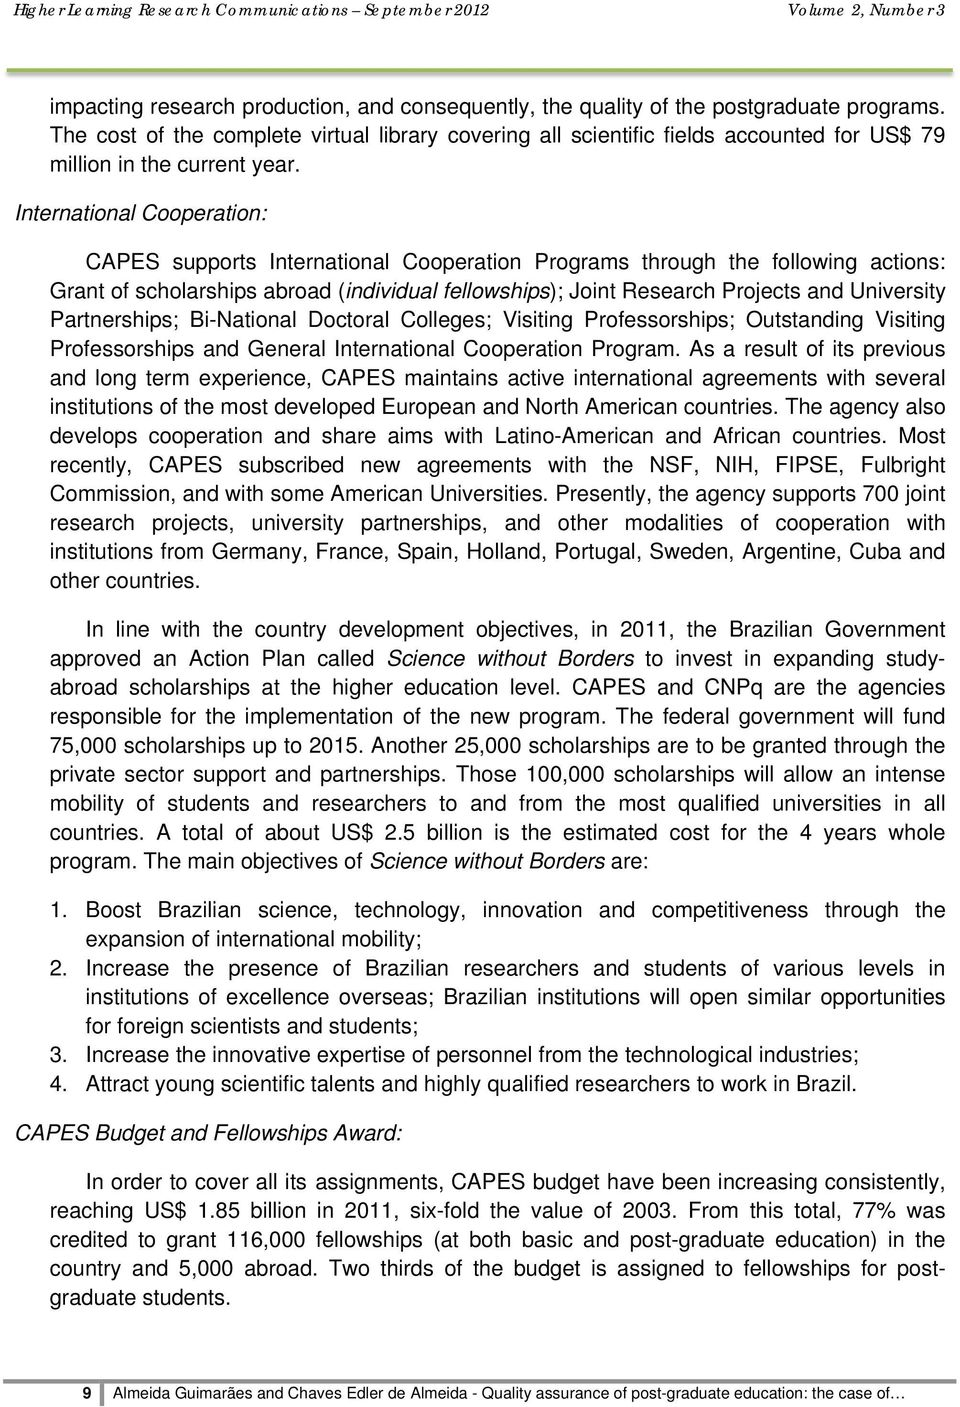 International Cooperation: CAPES supports International Cooperation Programs through the following actions: Grant of scholarships abroad (individual fellowships); Joint Research Projects and